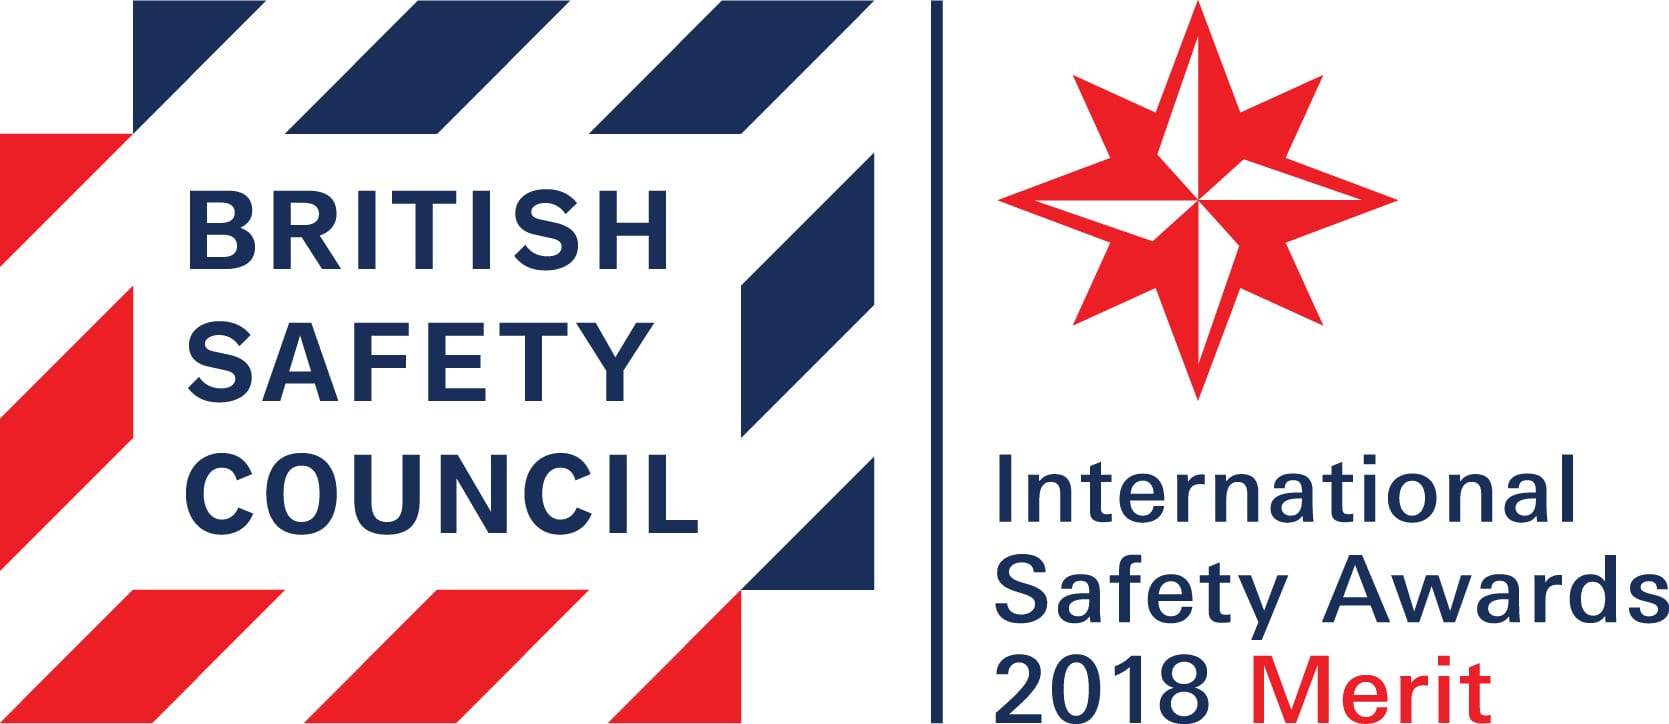 British Safety Council International H&S Award - Merit